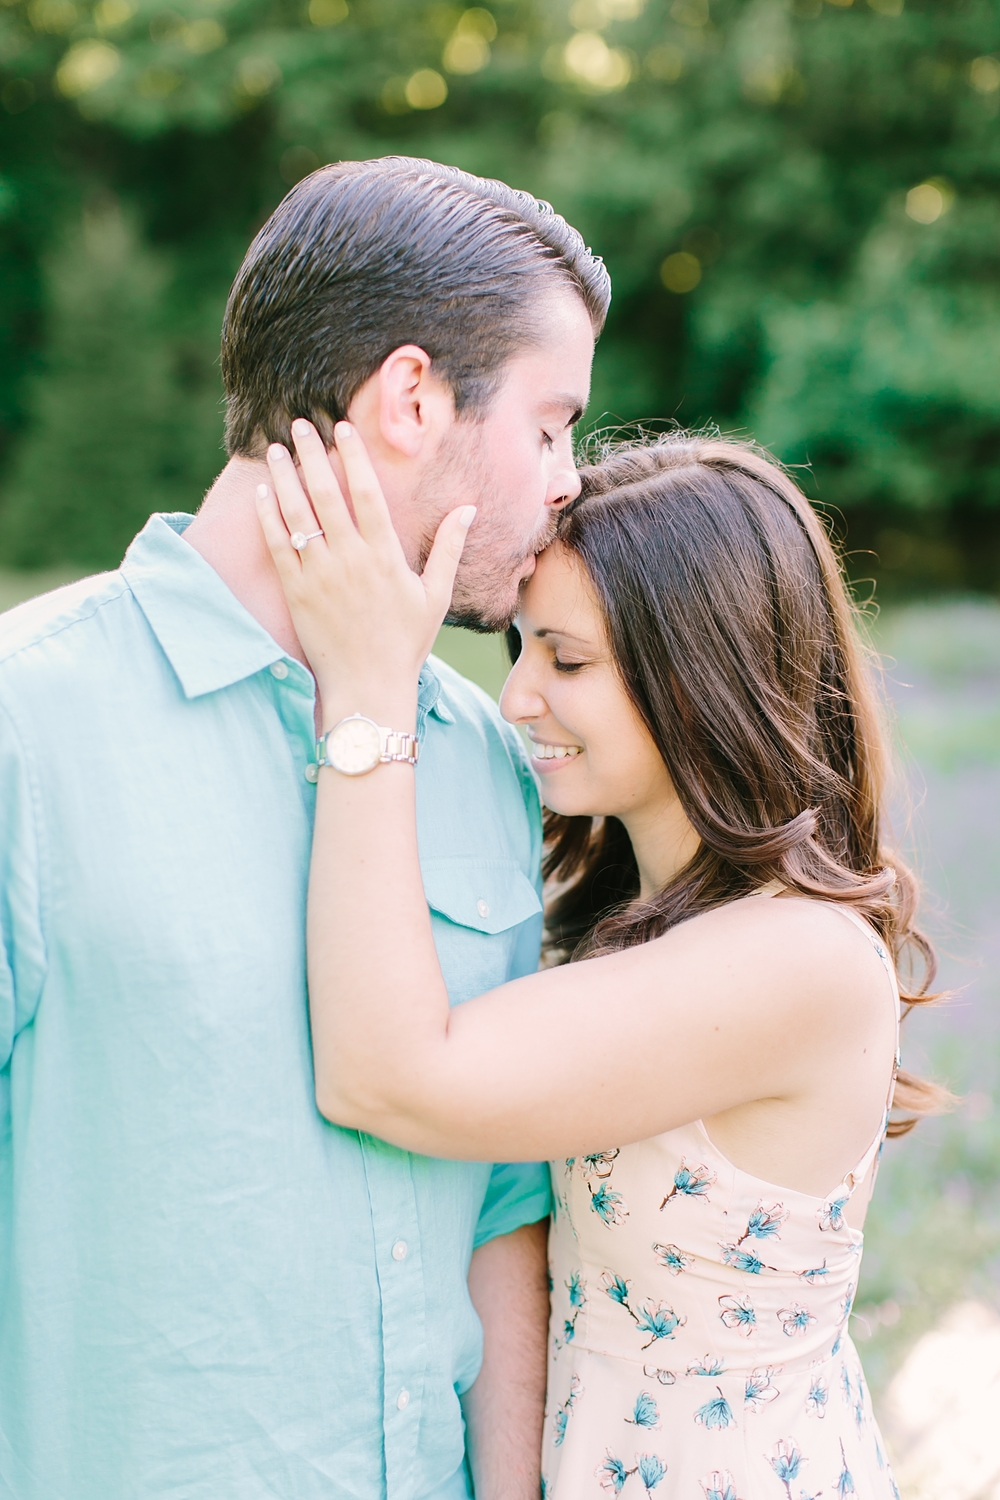 pleasant_valley_lavender_farm_nj_engagement_photos10.jpg